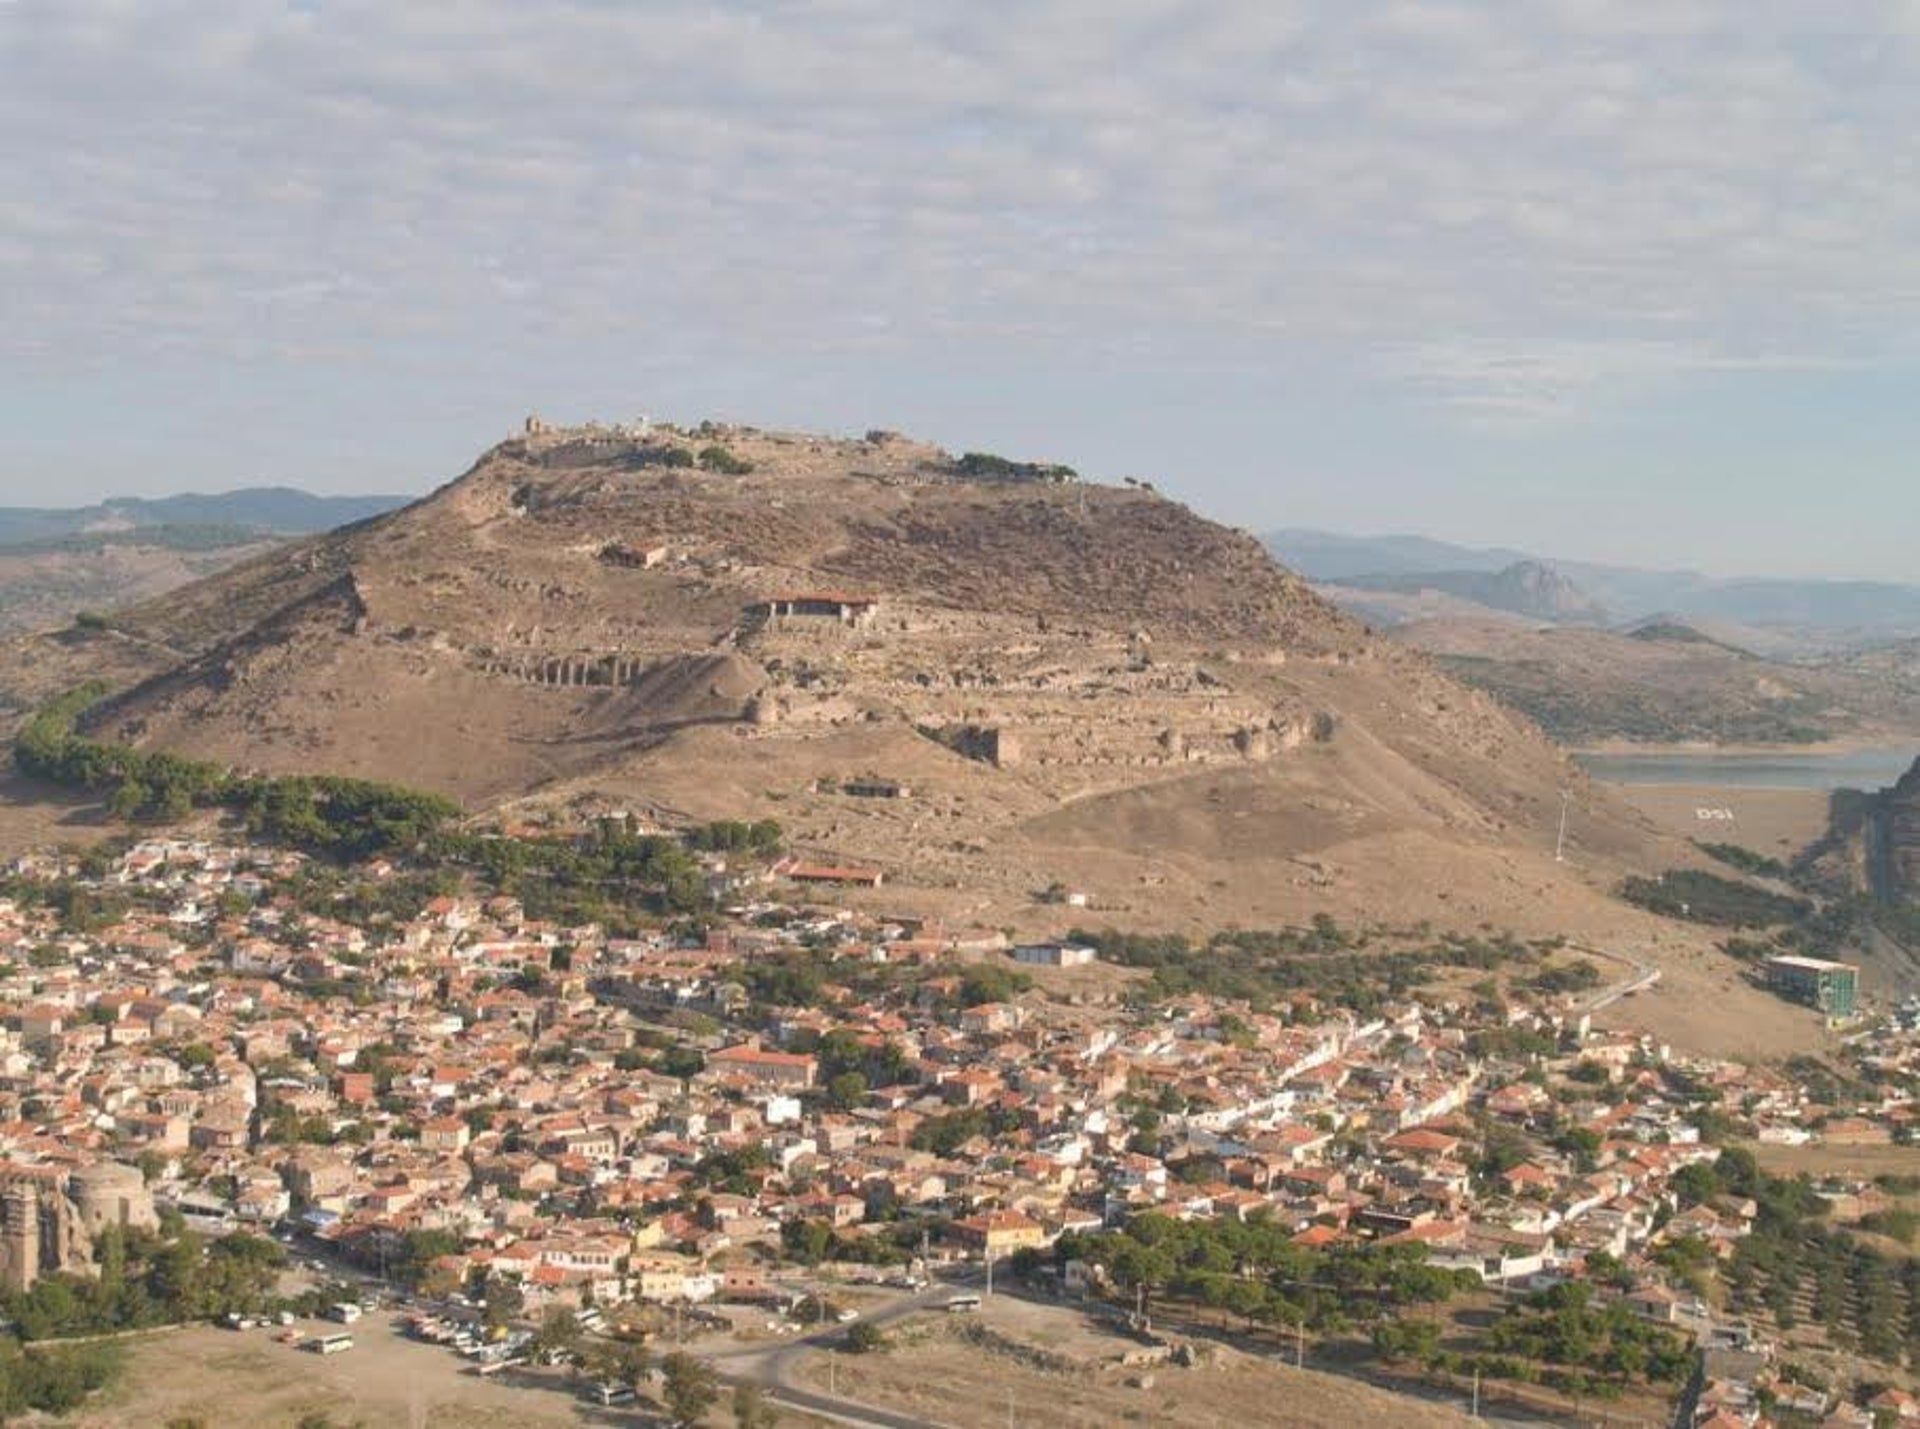 Ancient Pergamon and the modern Turkish city of Bergama: The view from the south.